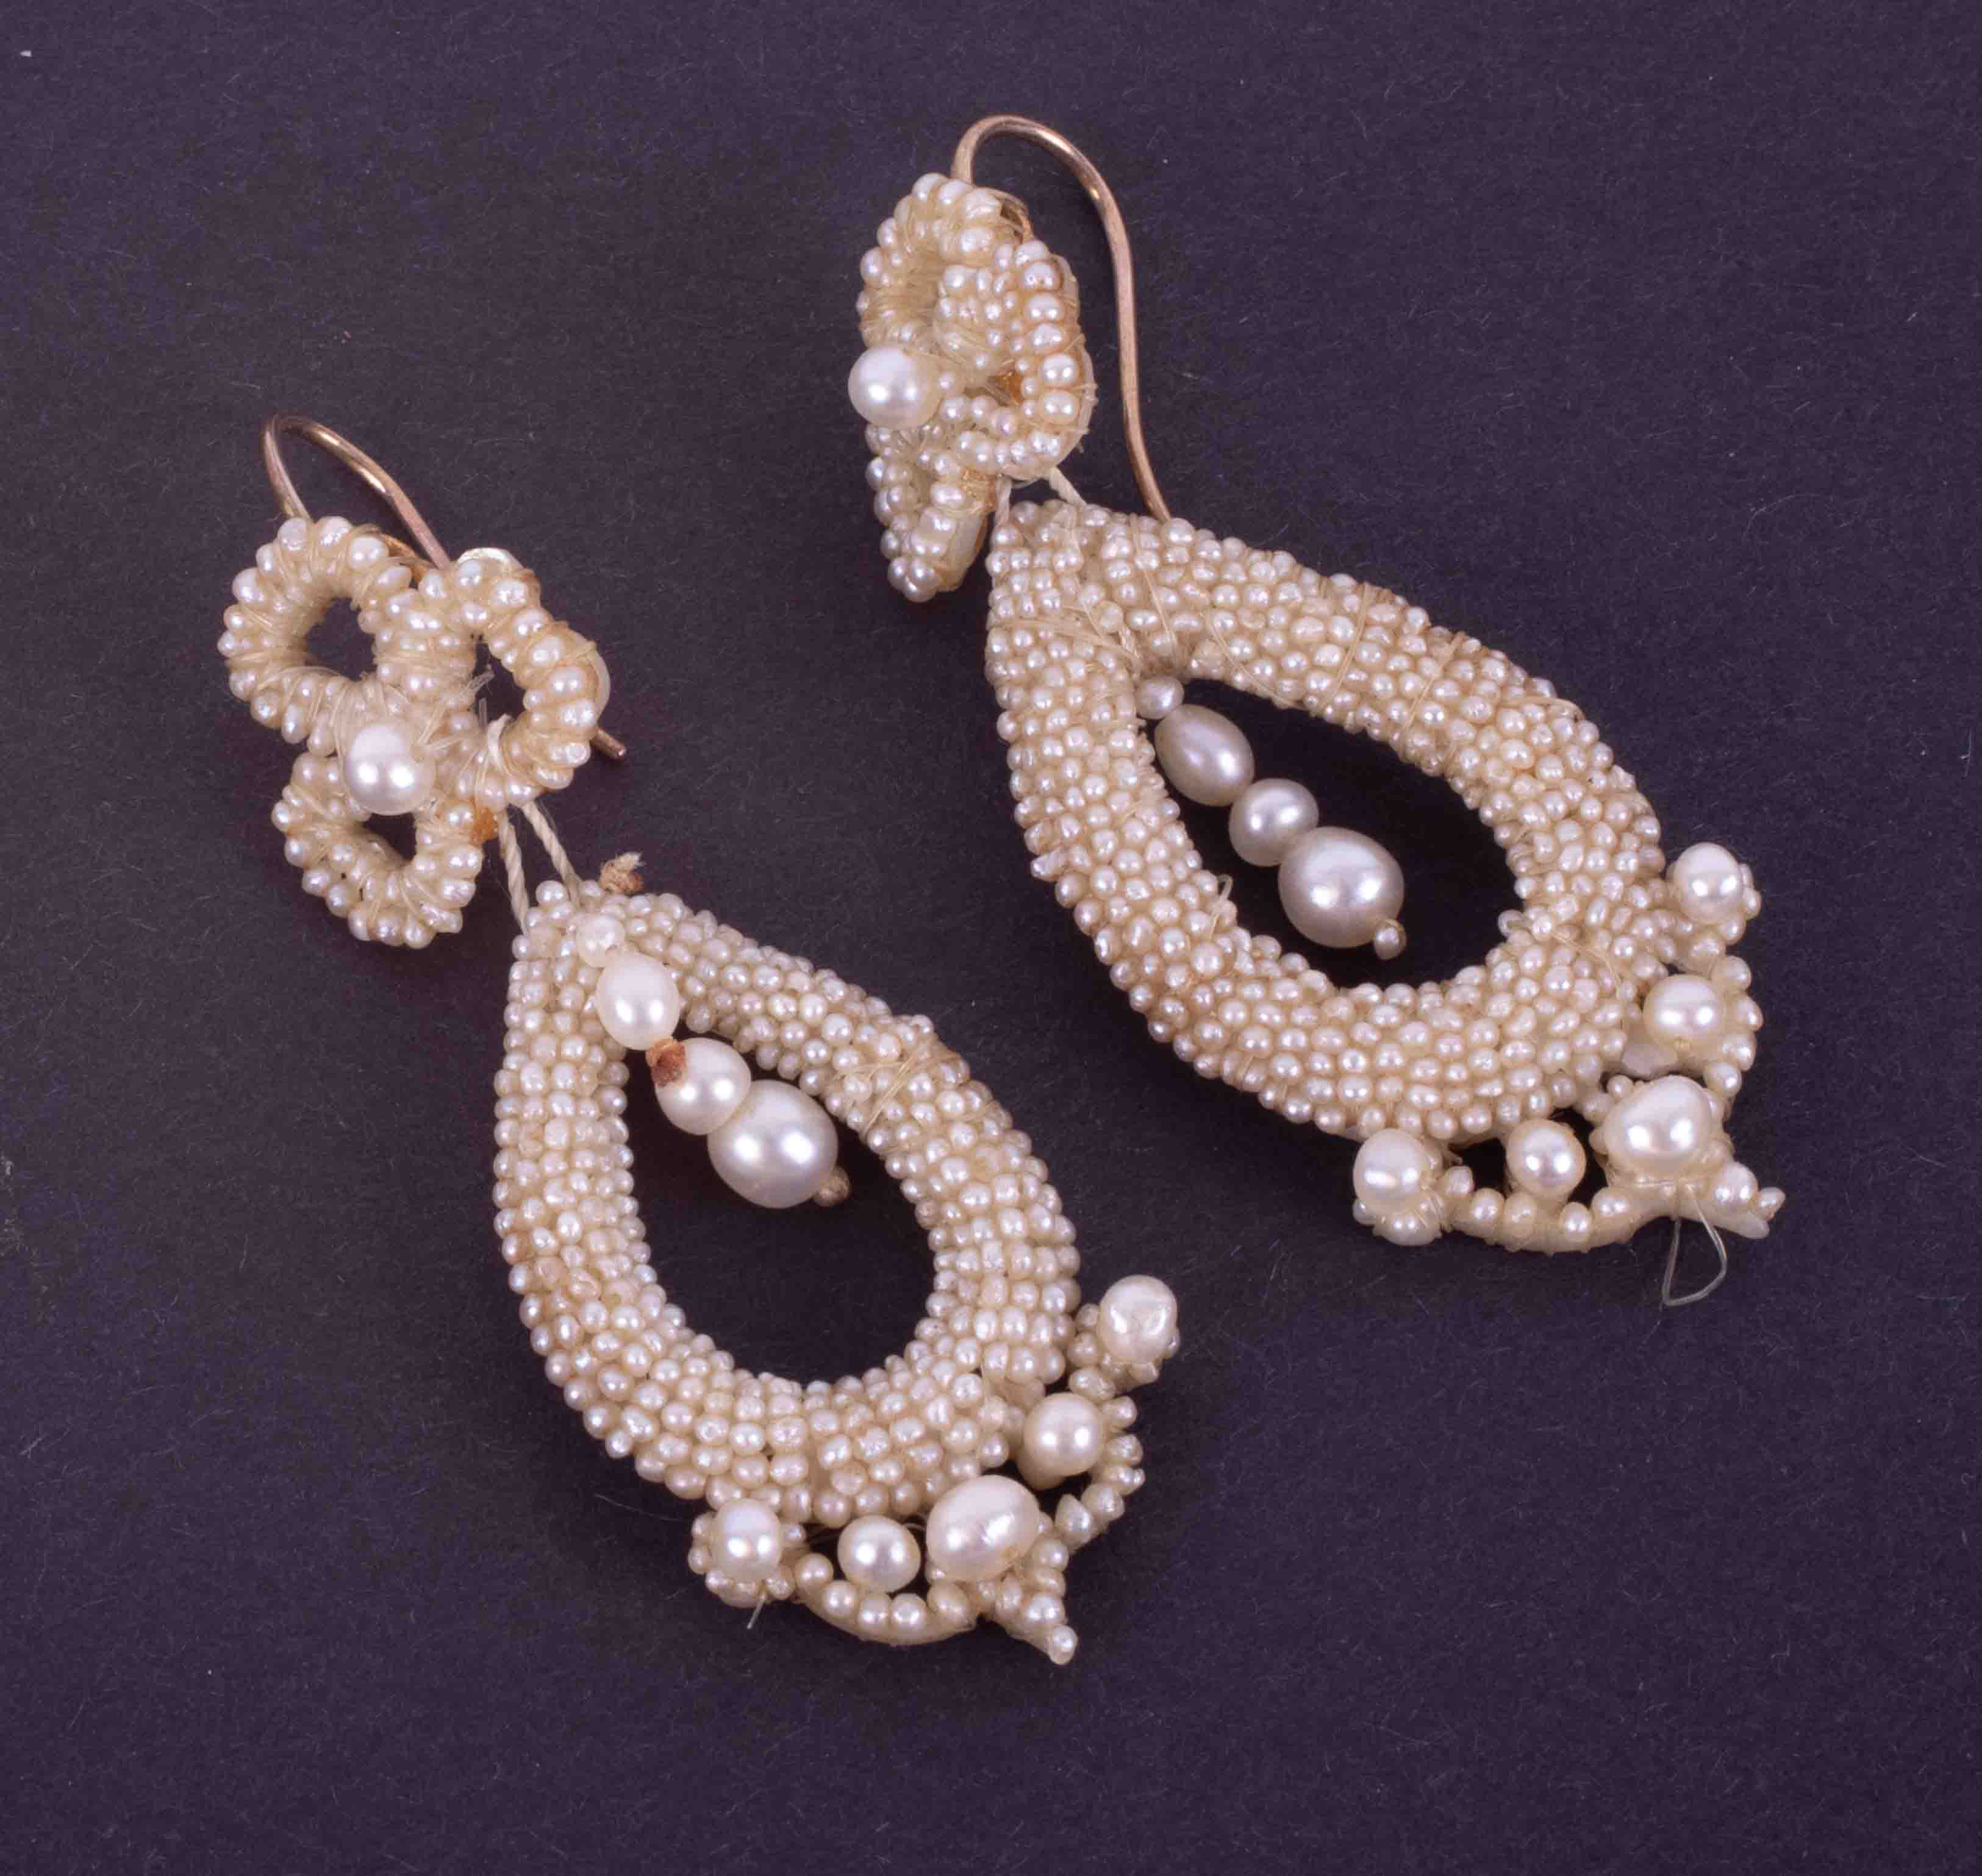 A pair of antique seed pearl and pearl drop earrings with hook fittings, 5.67g, length approx. 5.